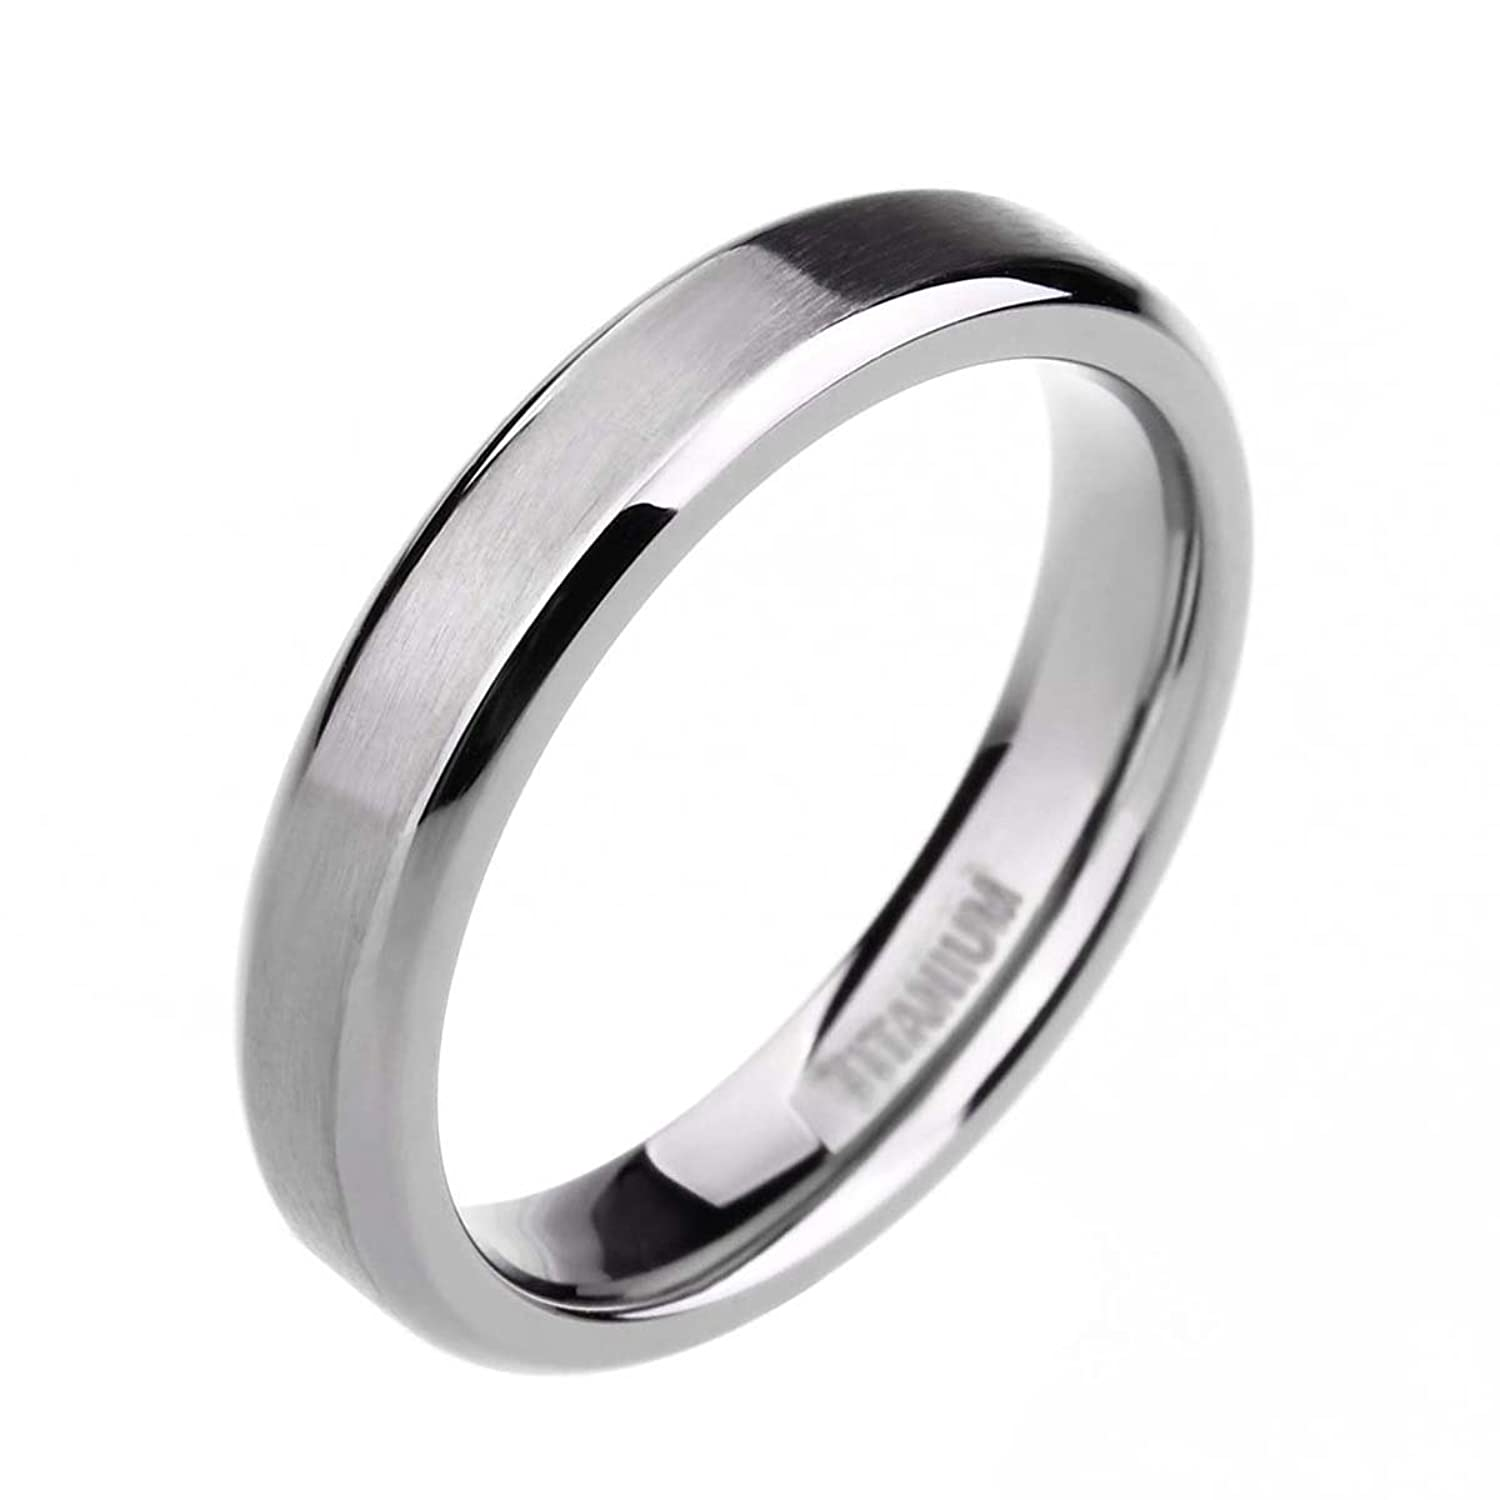 mens wedding rings 4MM 6MM 8MM Unisex Titanium Wedding Band Rings in Comfort Fit Matte Finish for